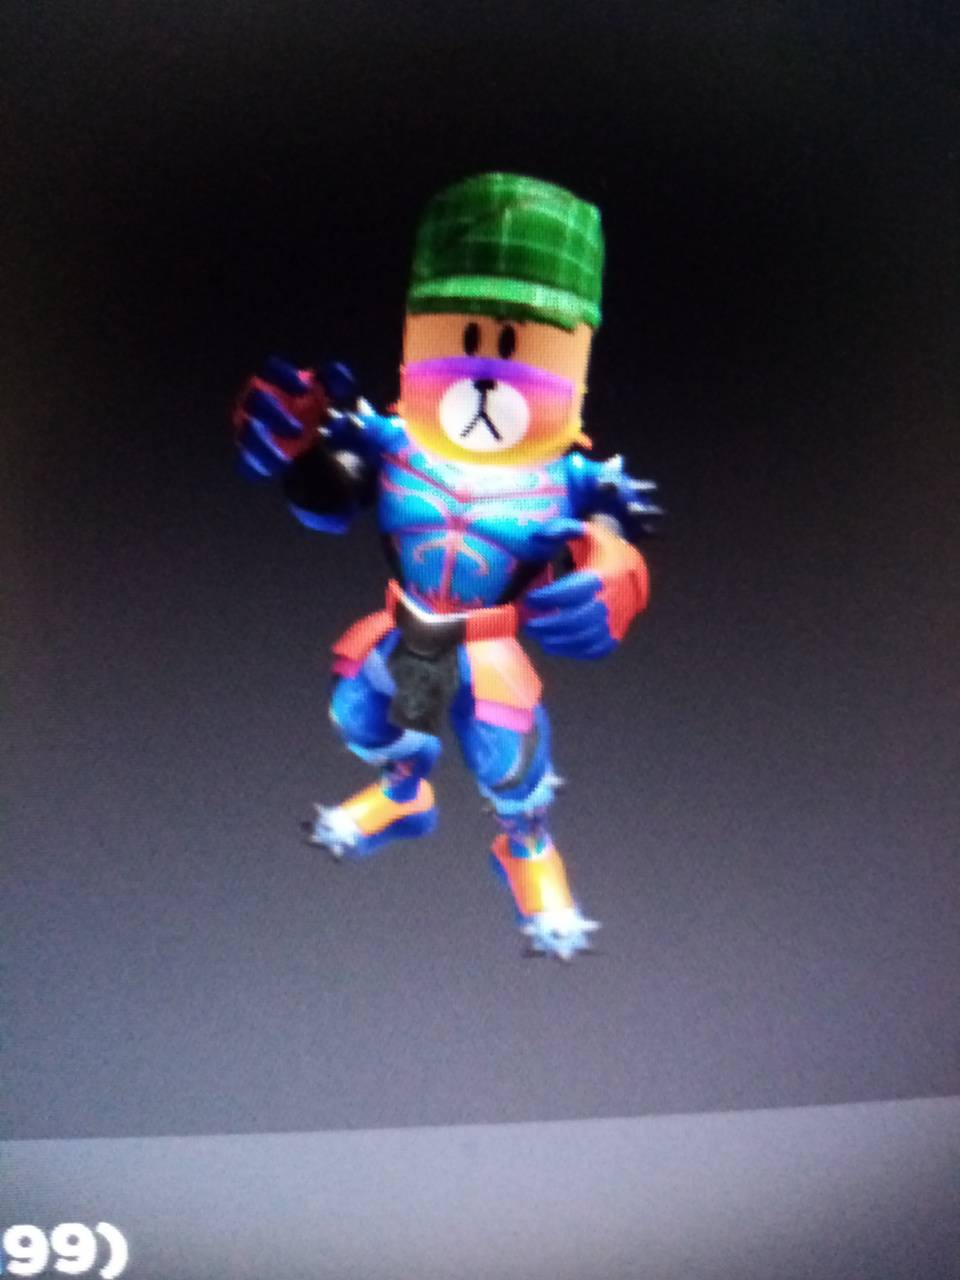 Cool Photos Of Roblox Yogibud Cool Roblox Wallpaper By Jenp83 19 Free On Zedge